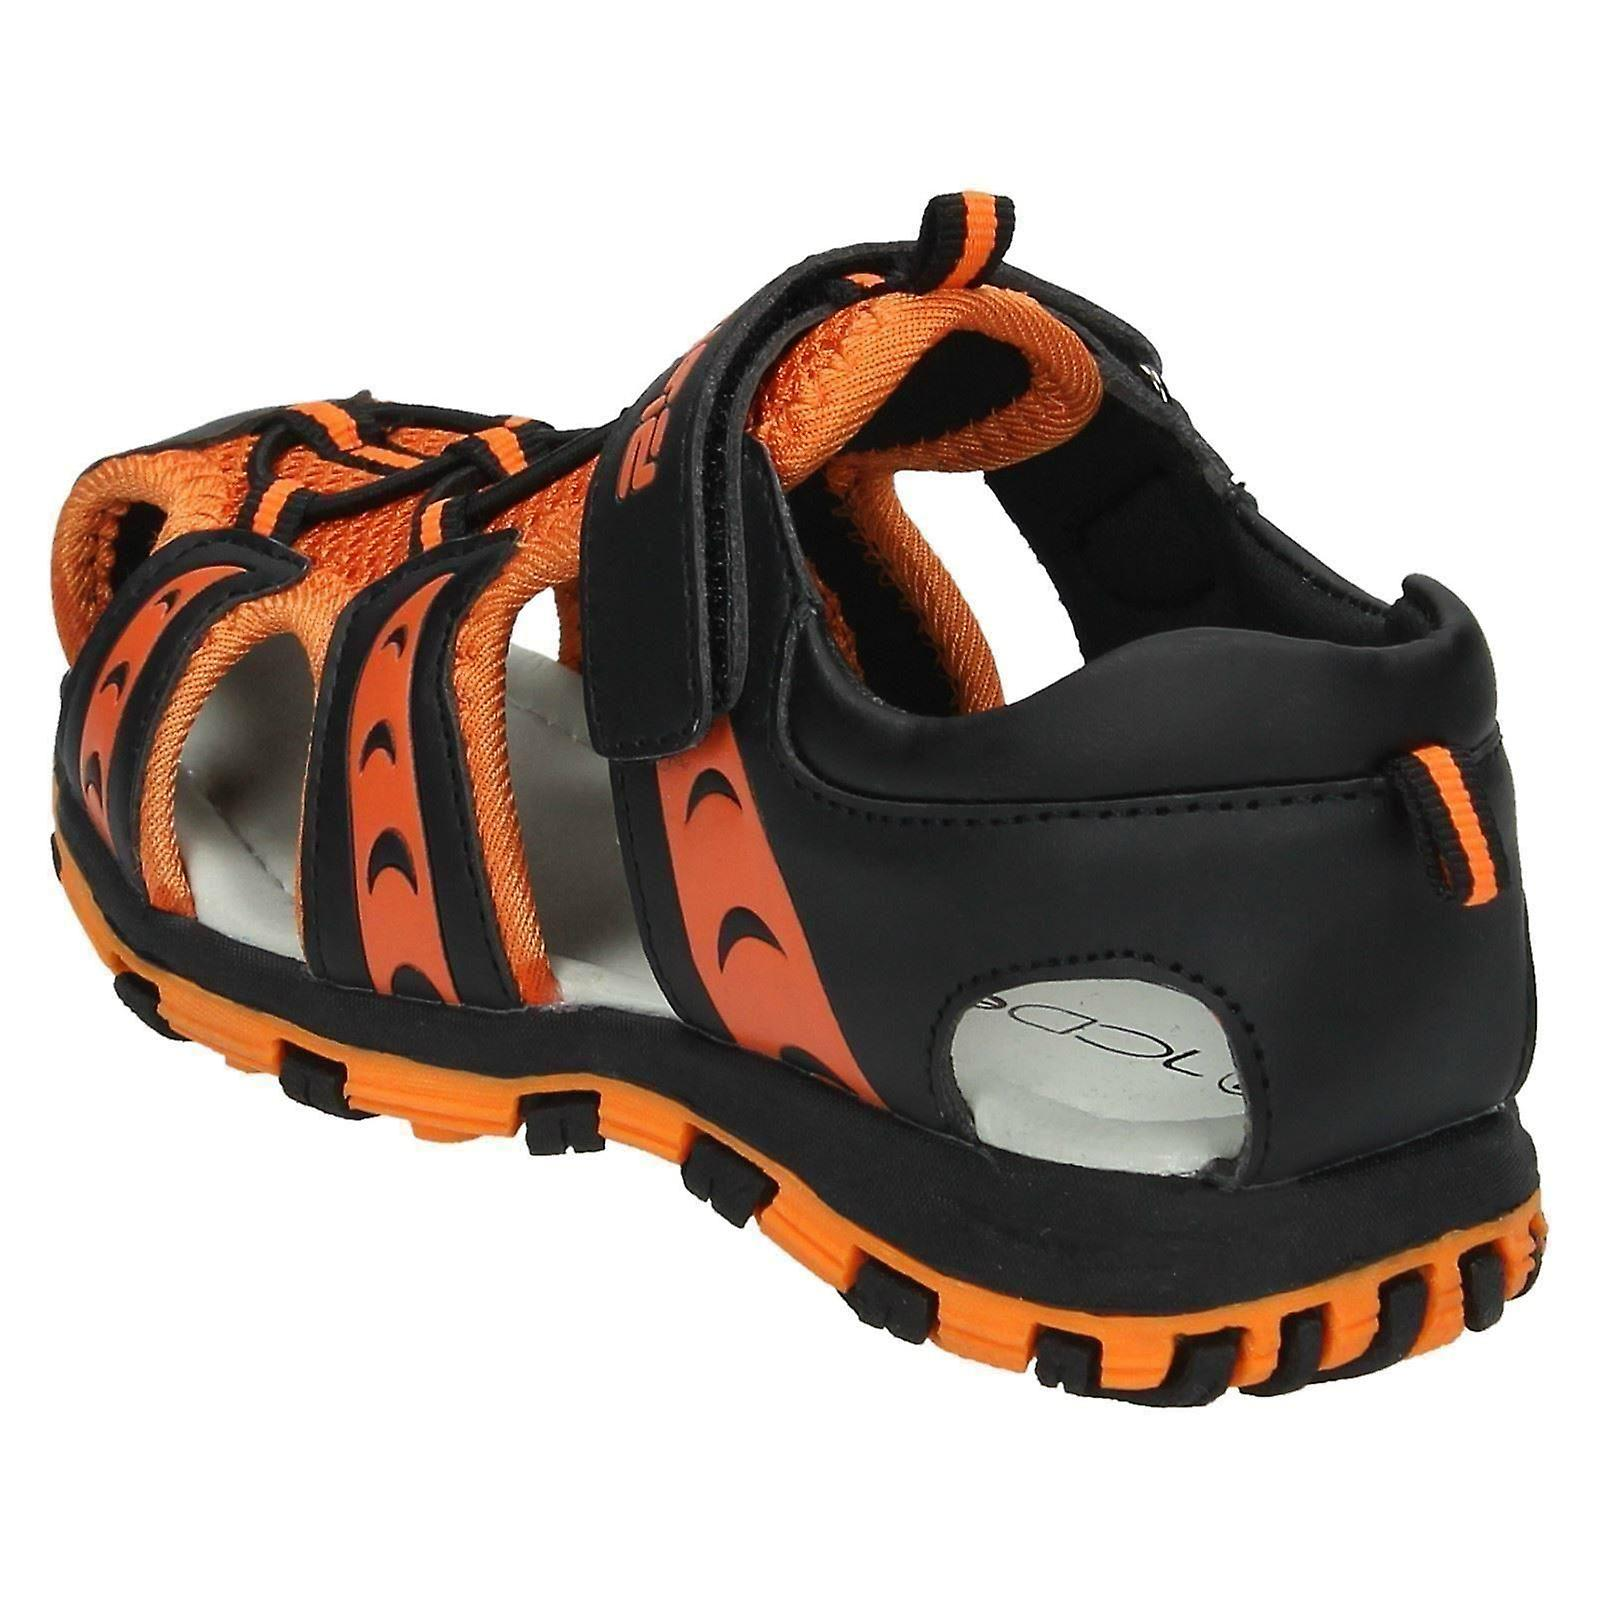 Clothes, Shoes & Accessories Boys Jcdees Casual Sporty Sandals *n0040* Boys' Shoes